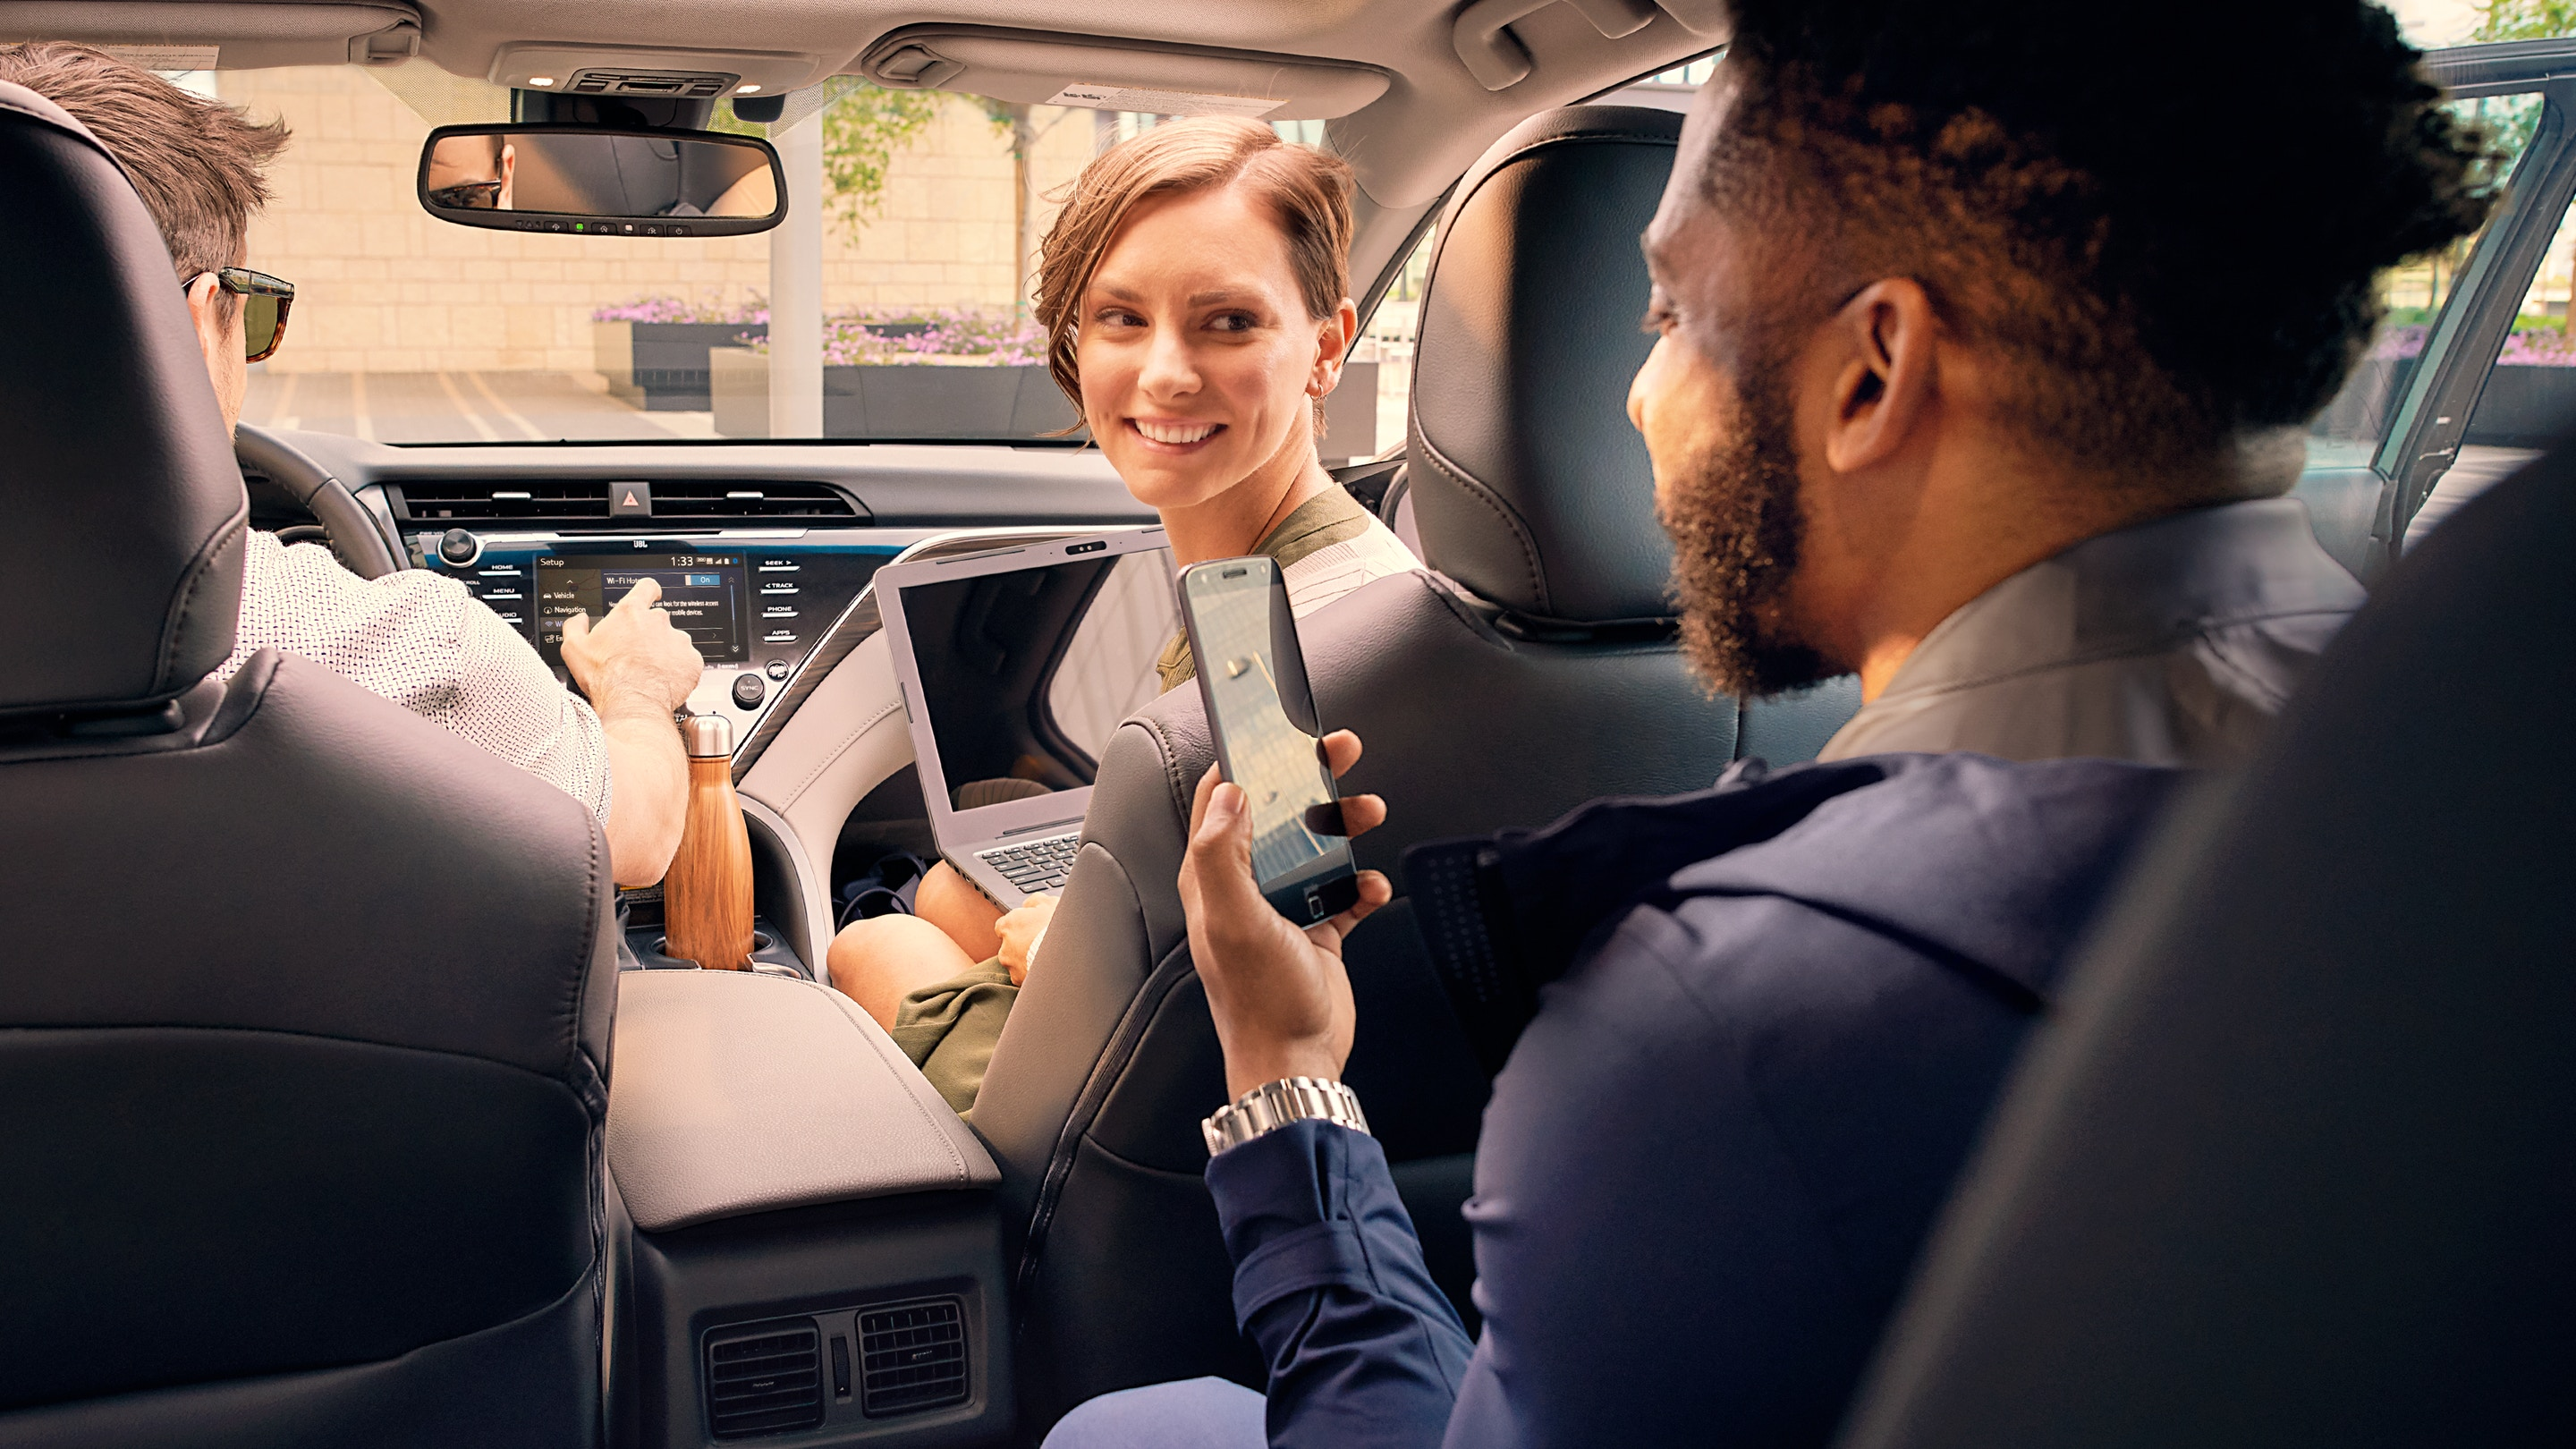 Easy Connectivity in the Camry